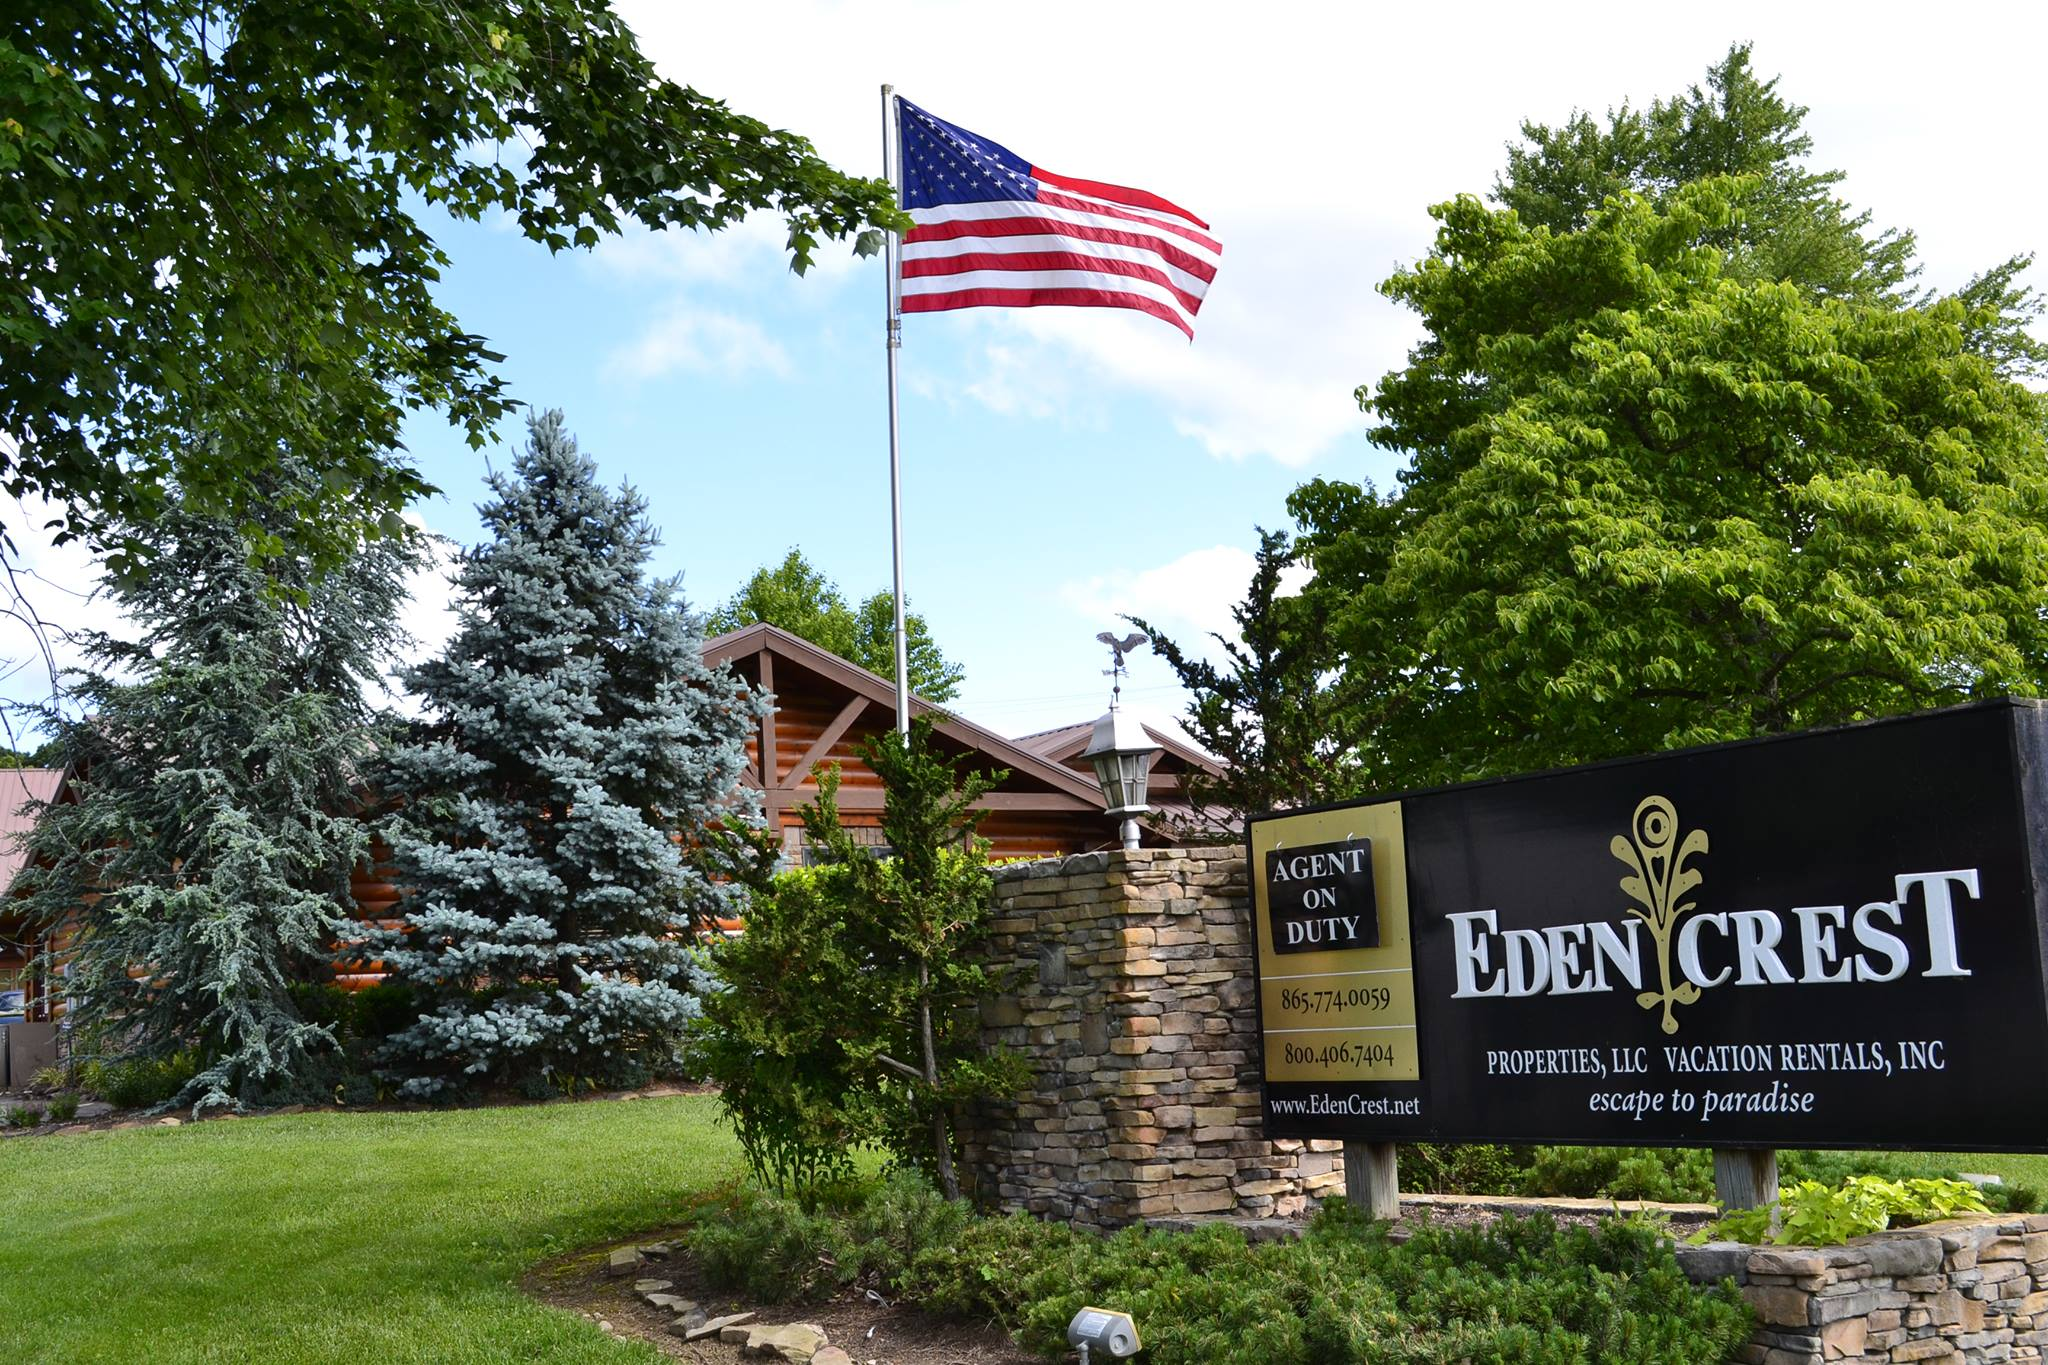 Eden-Crest-Vacation-Rentals-Pigeon-Forge-Tennessee-Office